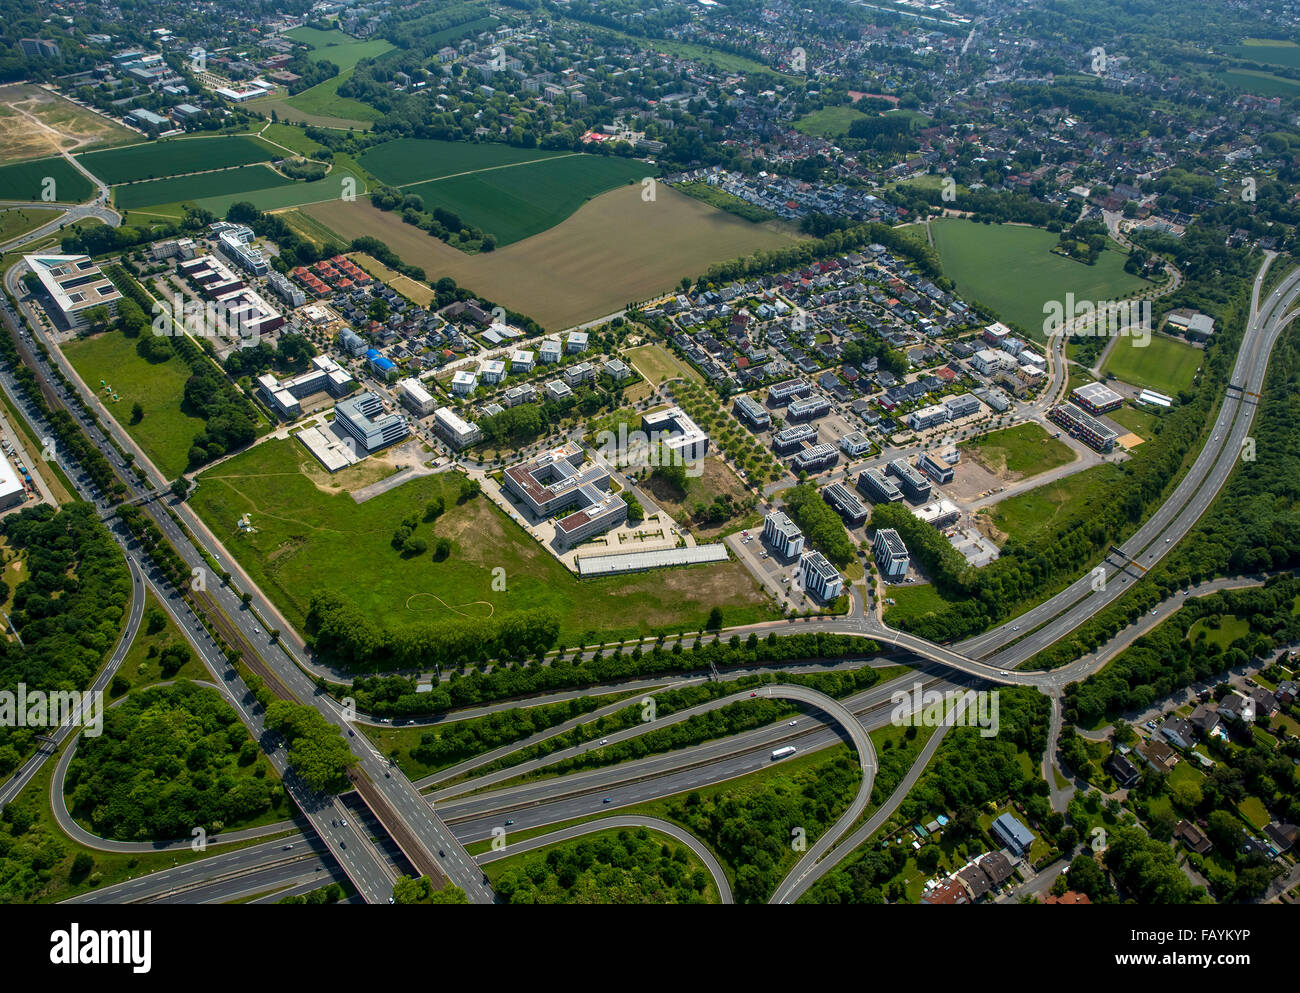 Aerial view, Stadtkrone Ost, B236 and A40 motorway, industrial estate and residential, mixed use, Dortmund, Ruhr - Stock Image